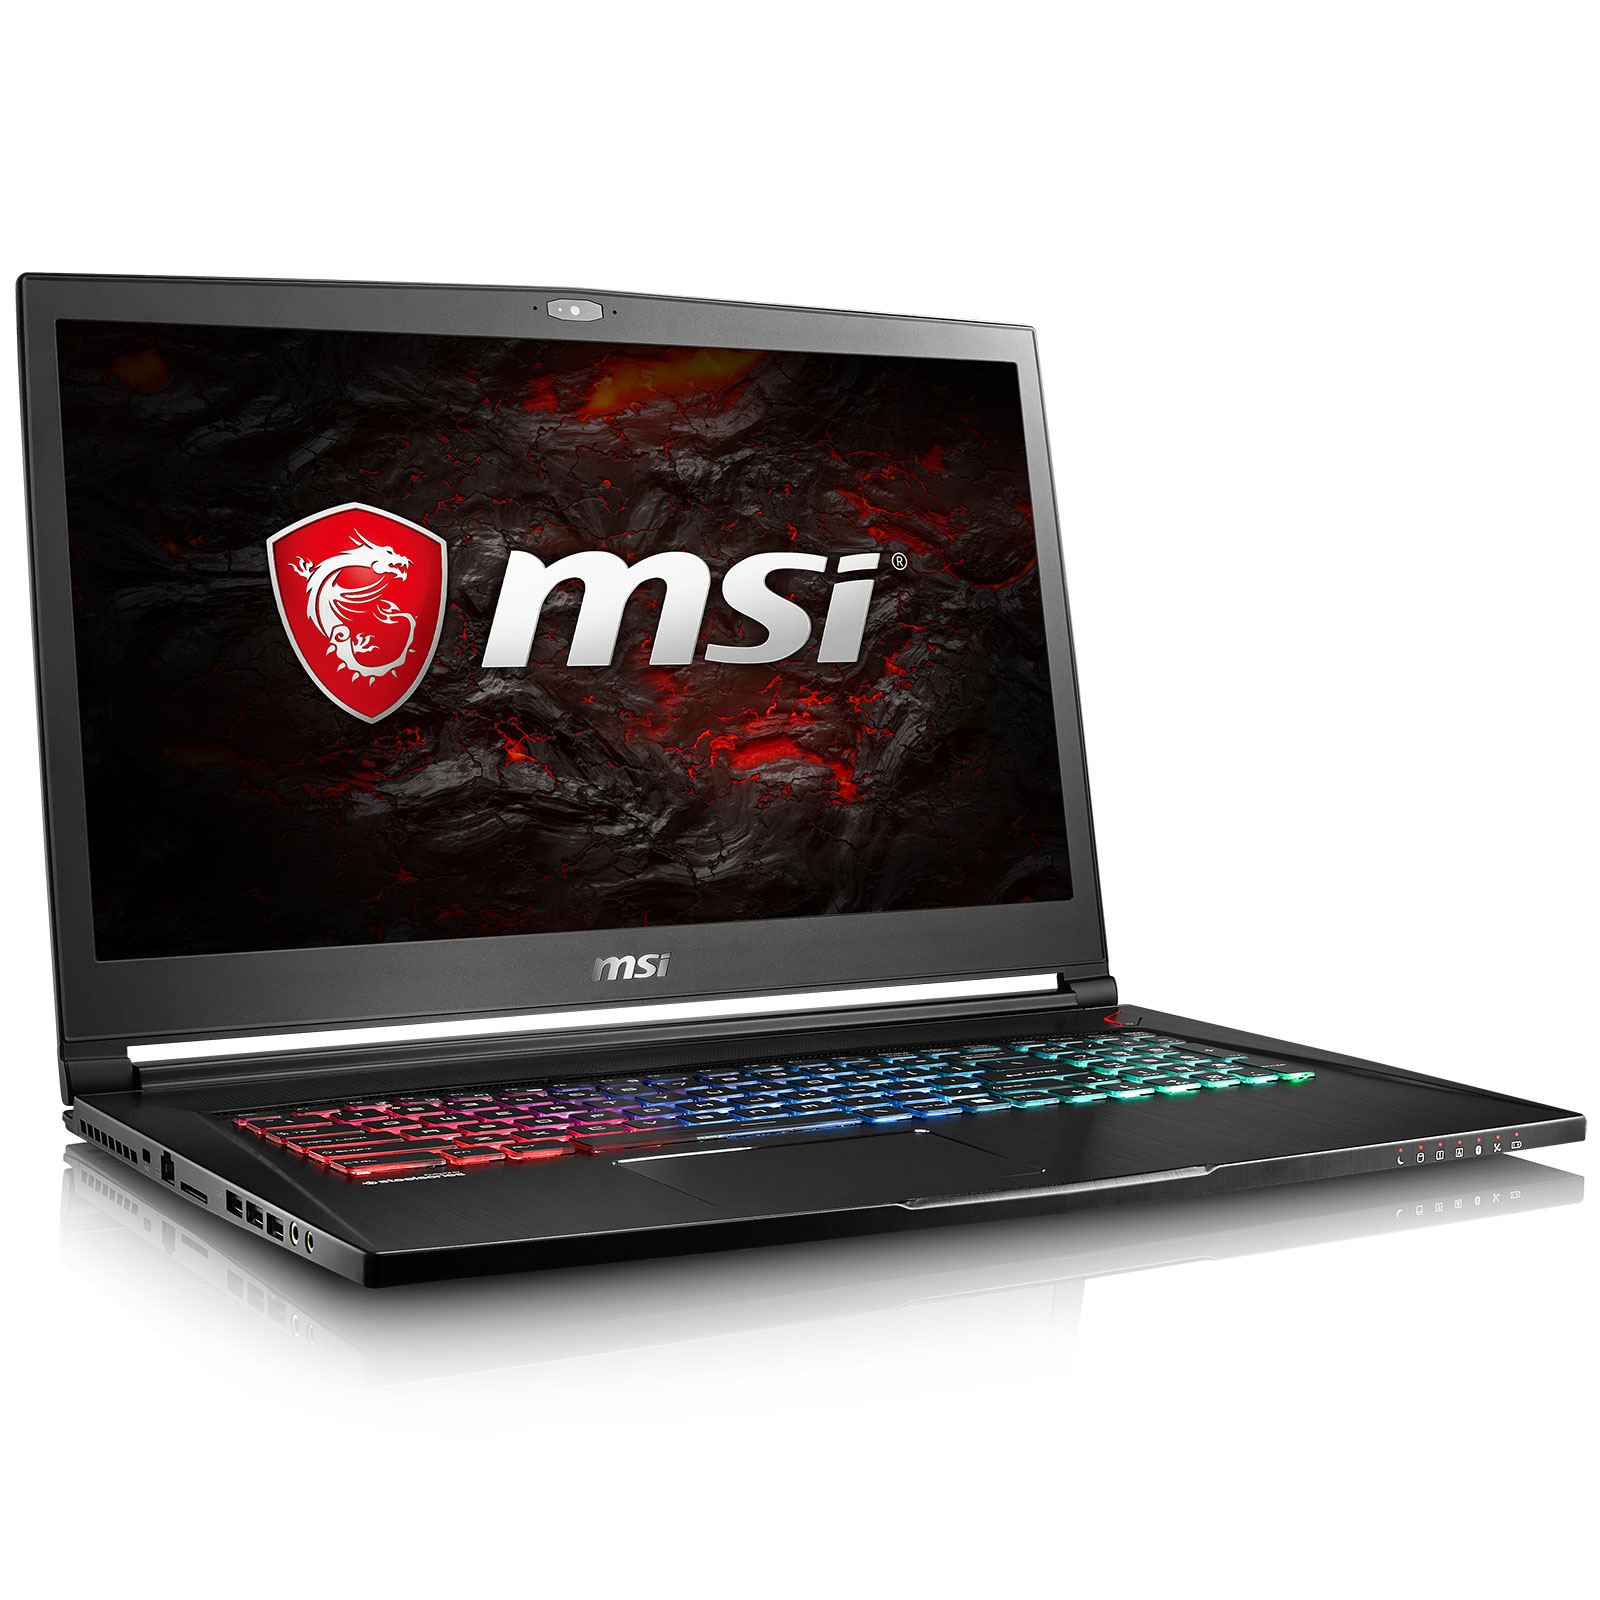 MSI 9S7-17B312-013 - PC portable MSI - Cybertek.fr - 0